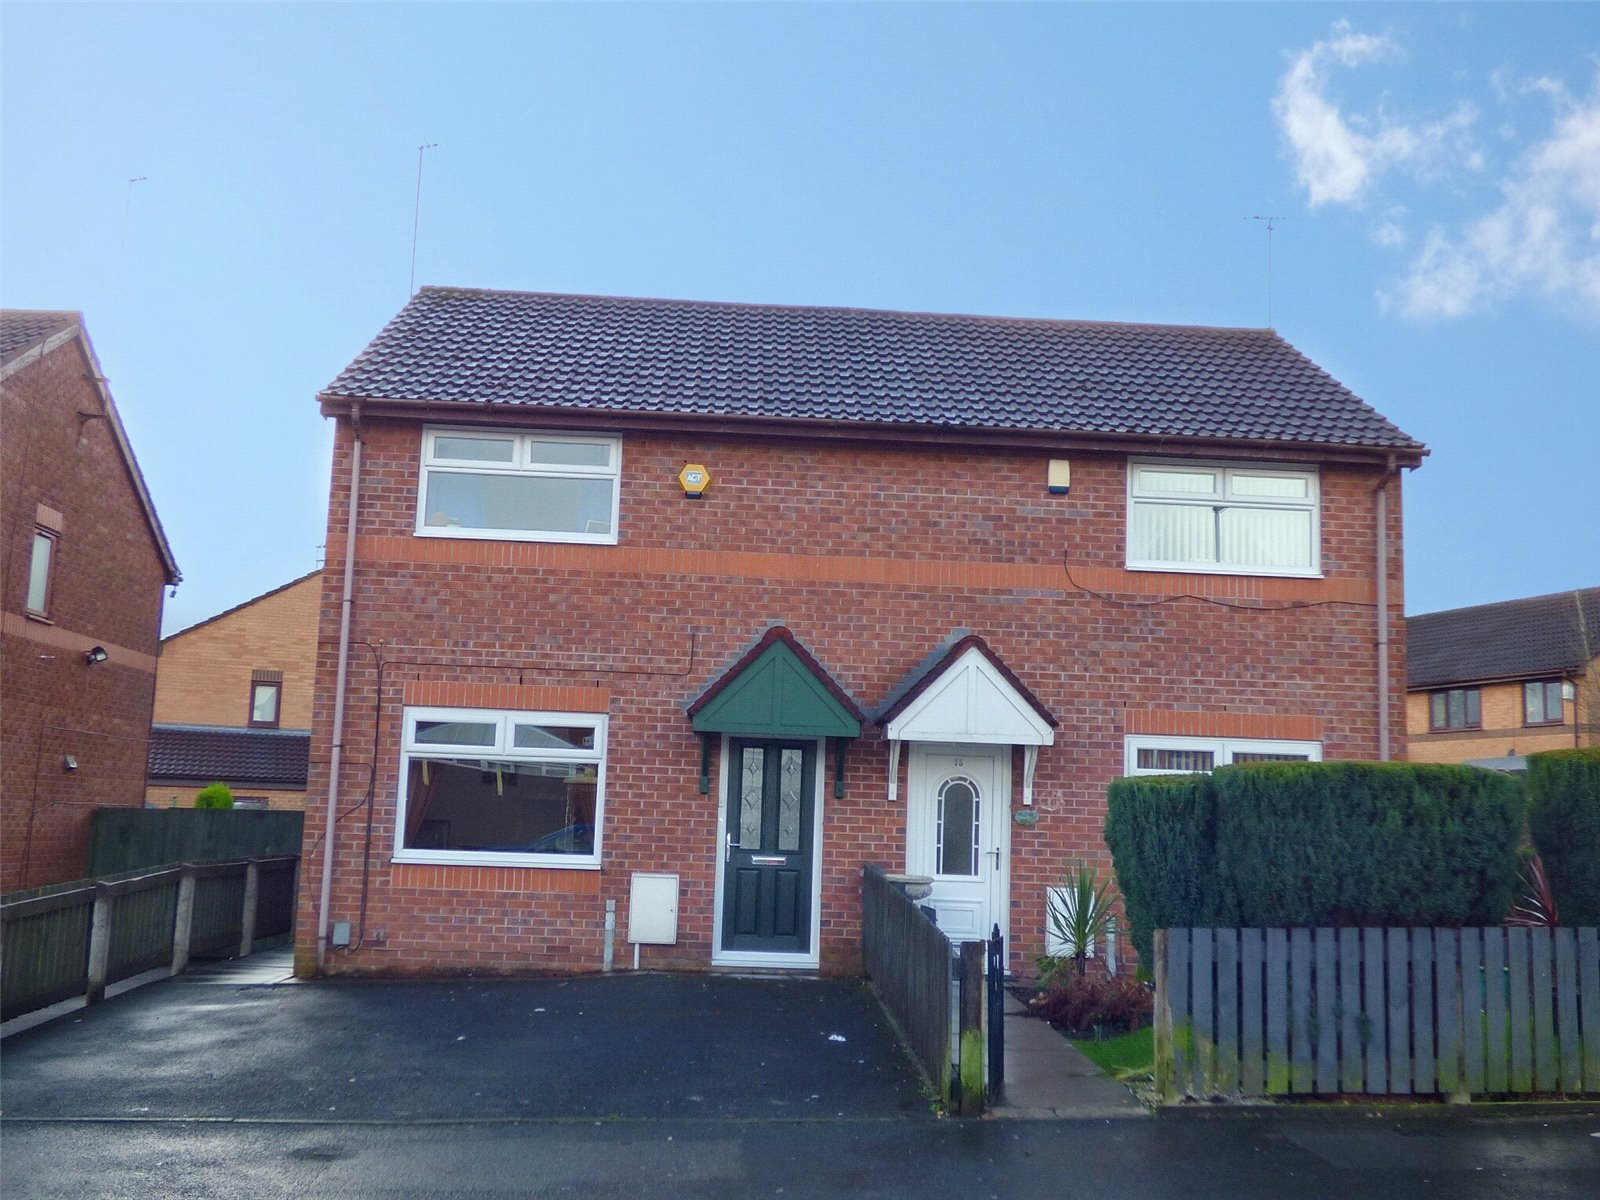 2 Bedrooms Semi Detached House for sale in Mellalieu Street, Middleton, Manchester, M24